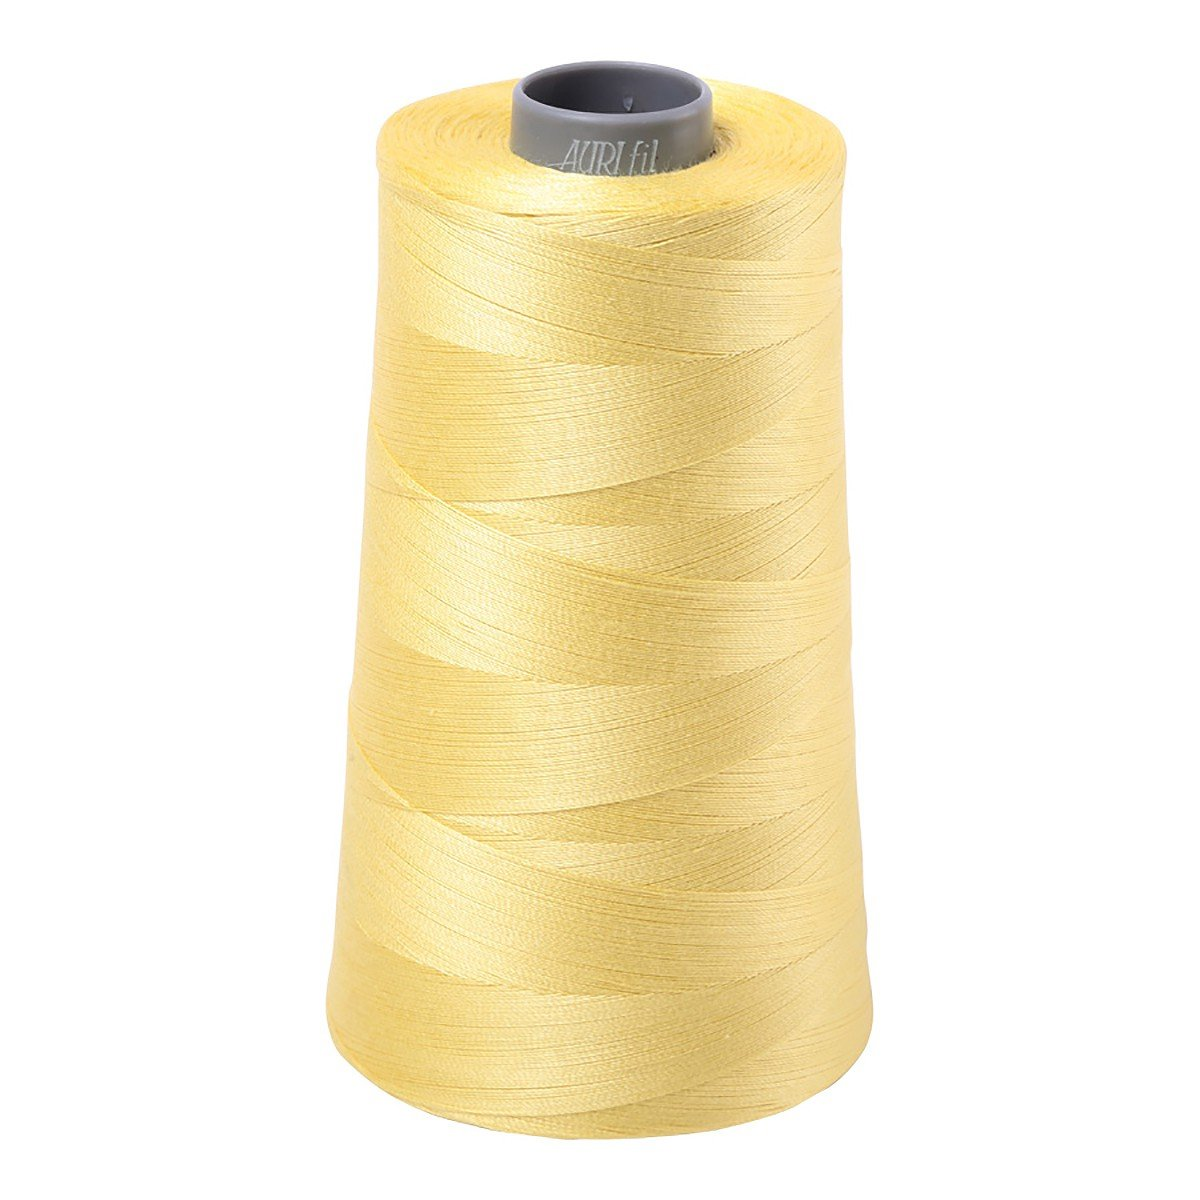 Mako (Cotton) Embroidery Thread 28wt 3609yds Lemon